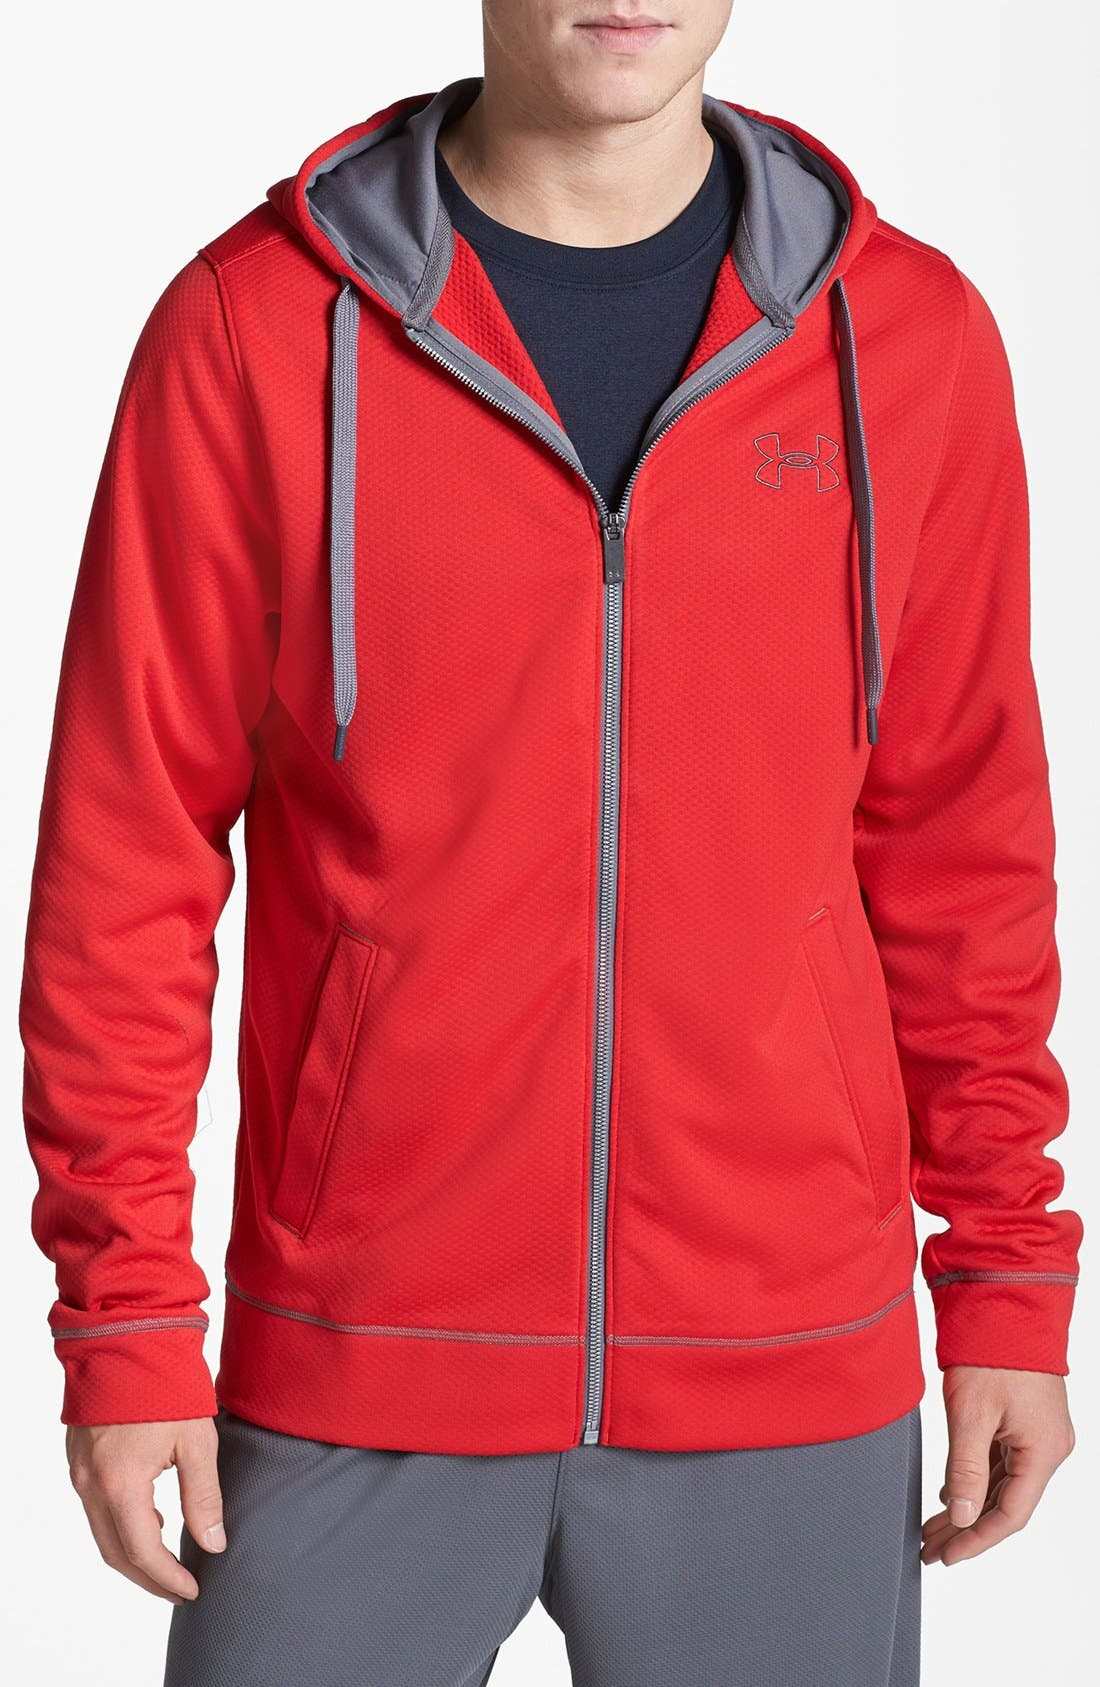 Alternate Image 1 Selected - Under Armour 'Tech' Loose Fit Fleece Hoodie